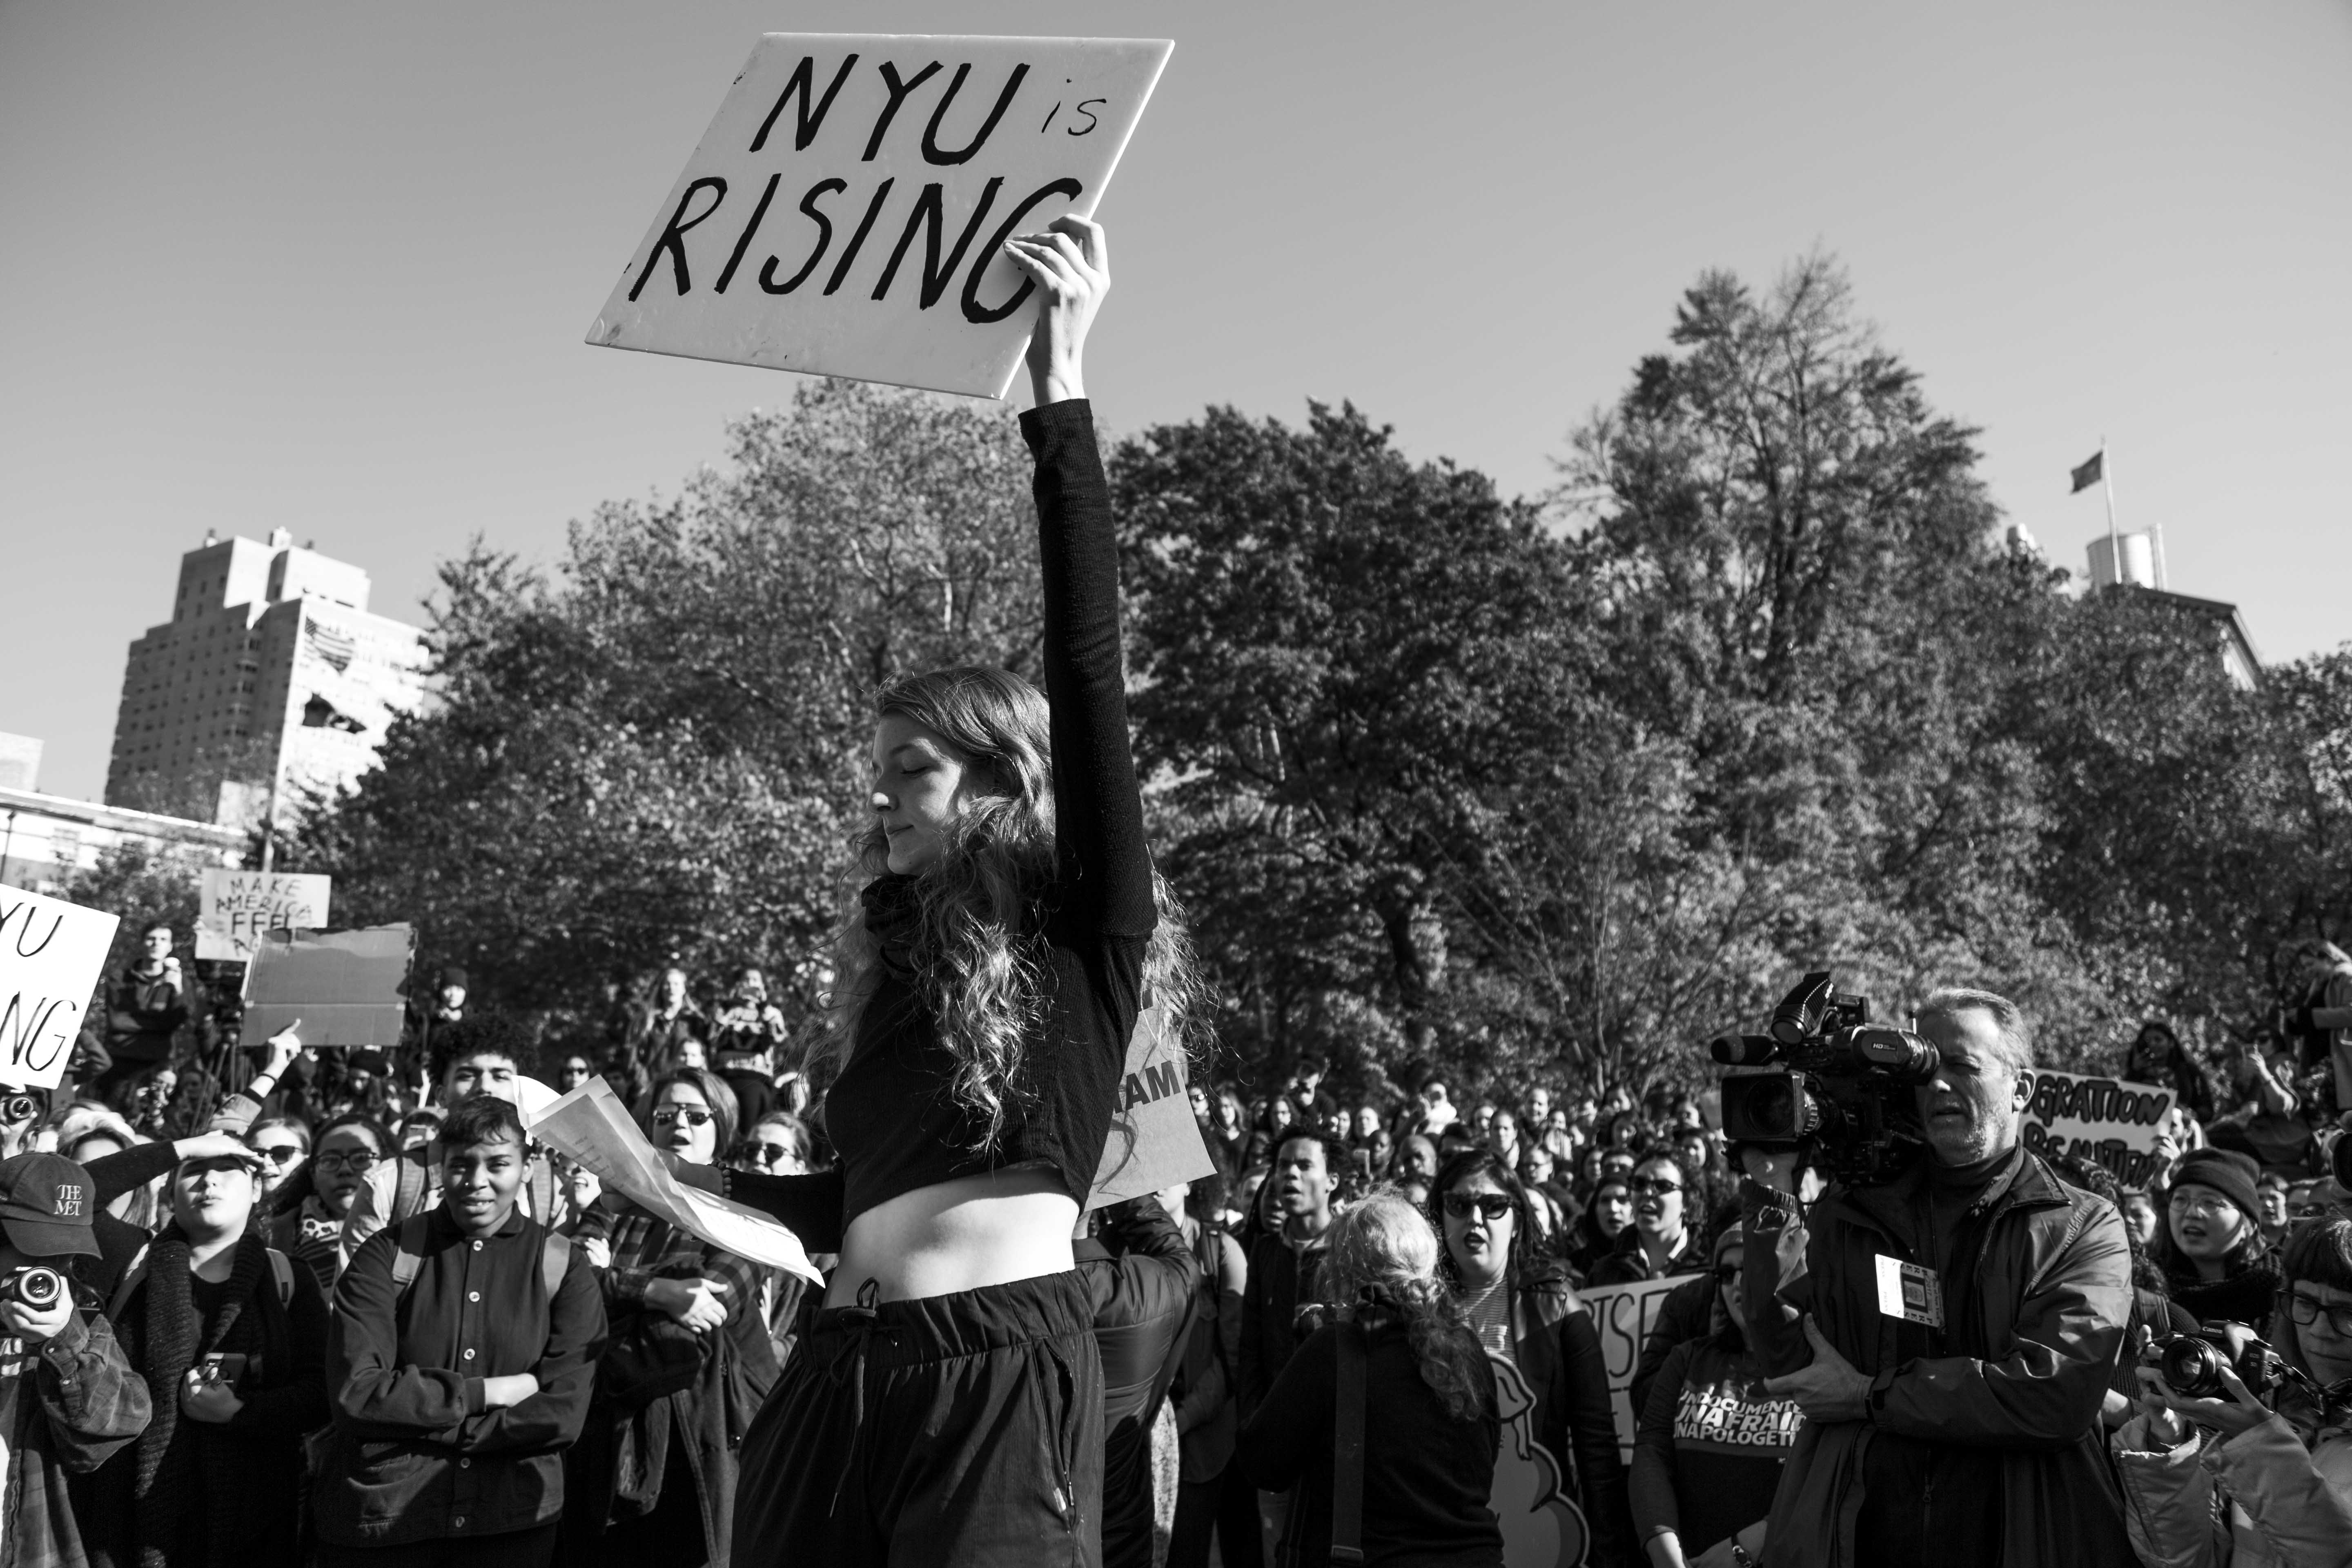 Though there were numerous protests in the weeks following the election, demonstrations have since have abated.